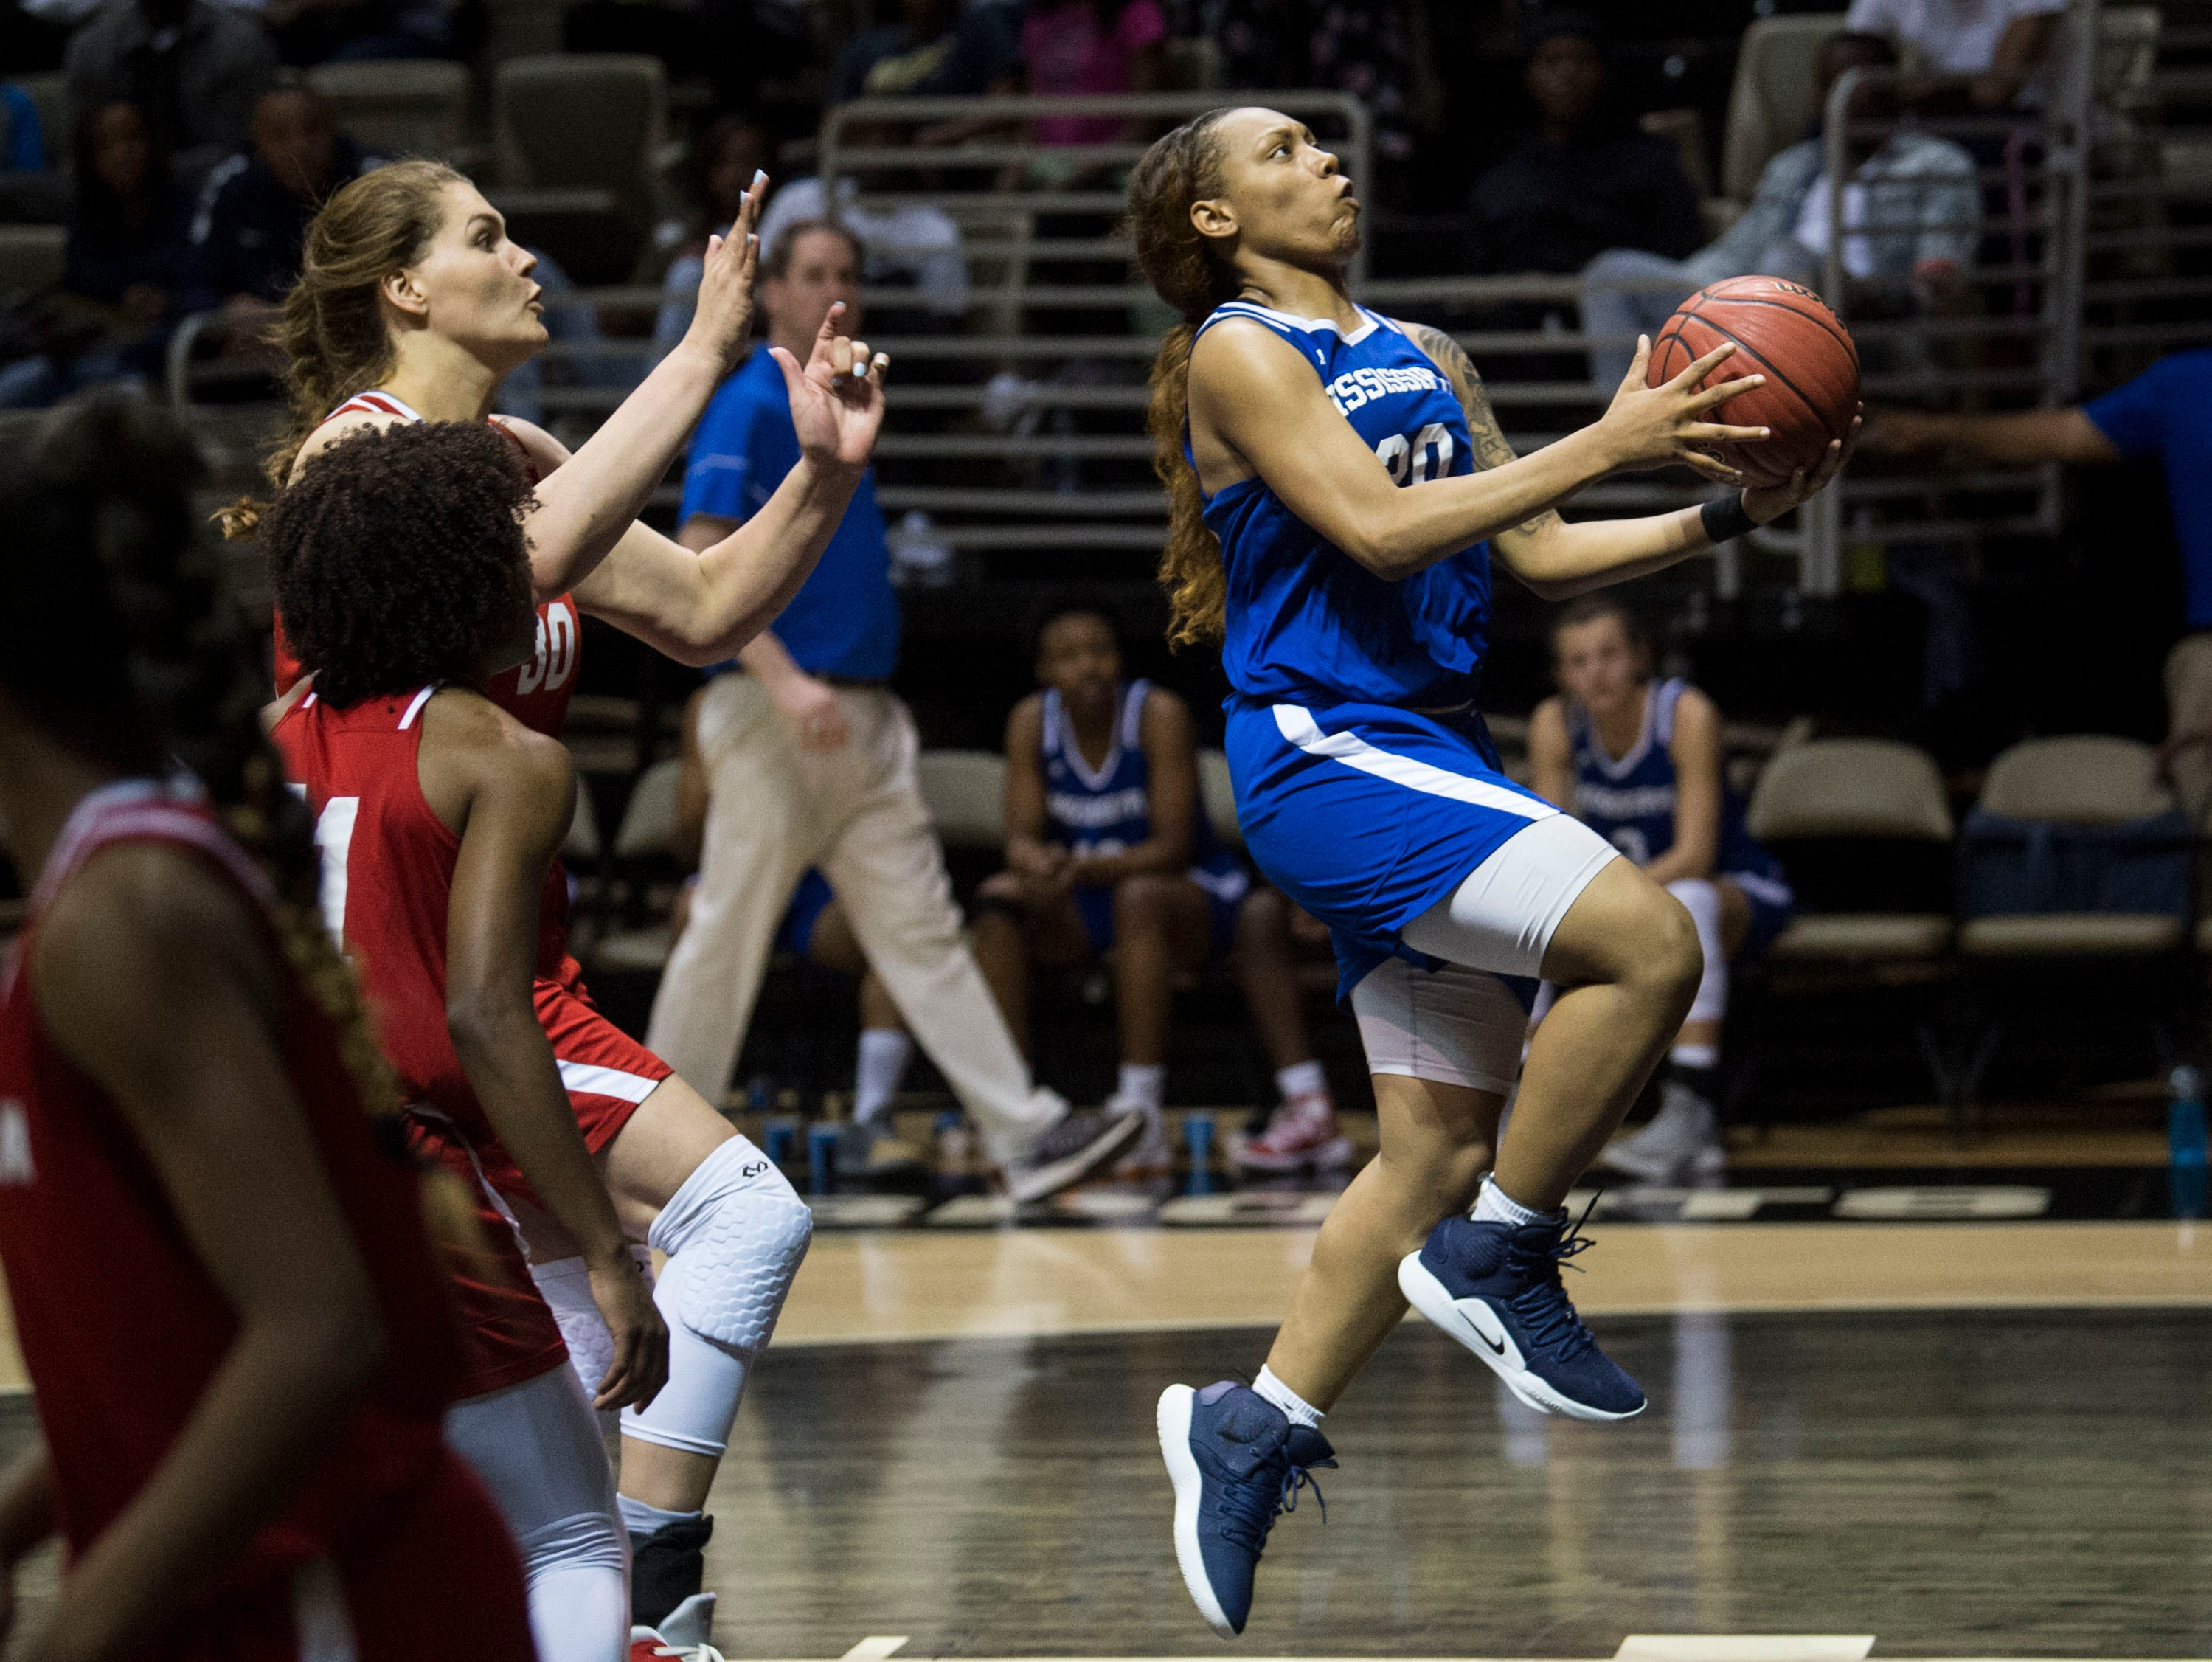 Mississippi's Jayla Alexander (20) goes up for a layup during the Alabama-Mississippi All-Star game at the Dunn-Oliver Acadome in Montgomery, Ala., on Friday, March 15, 2019. Alabama All-stars defeated the Mississippi All-stars 101-82.